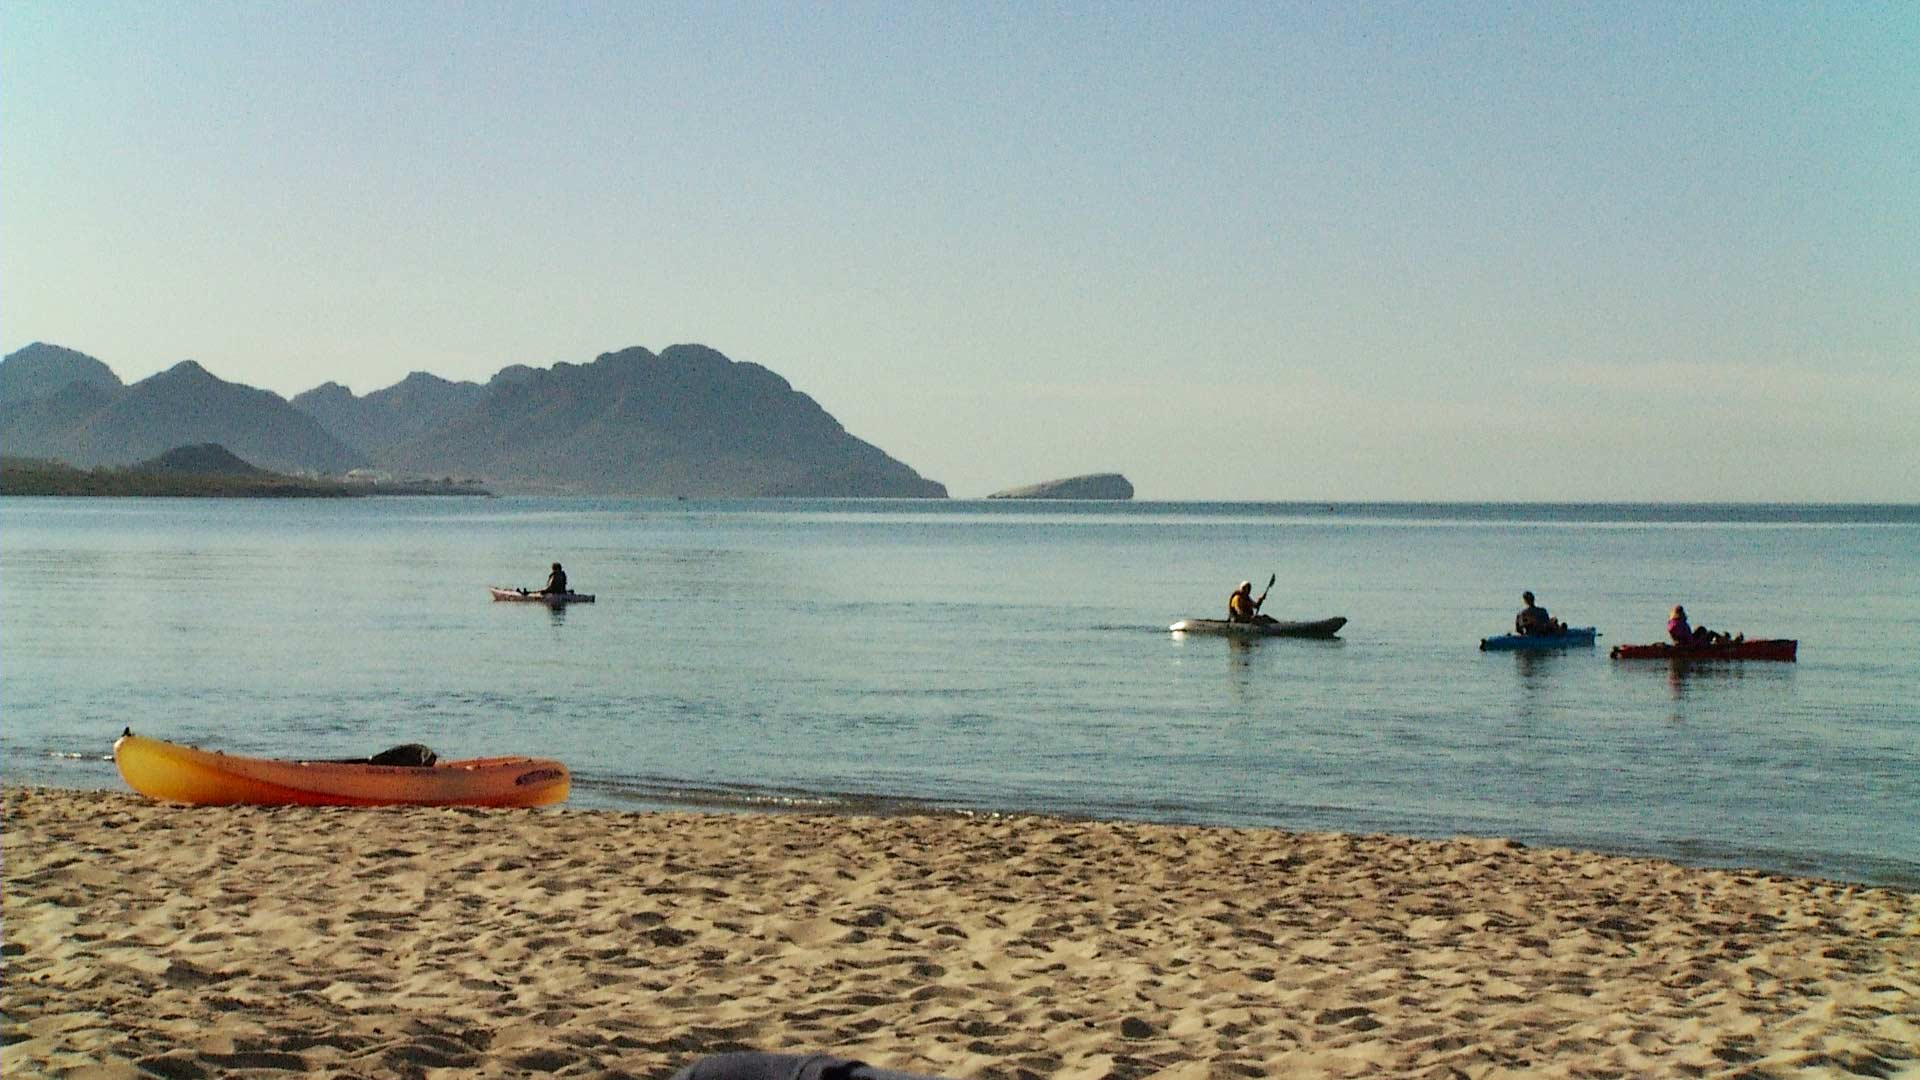 Kayakers at a beach in San Carlos.